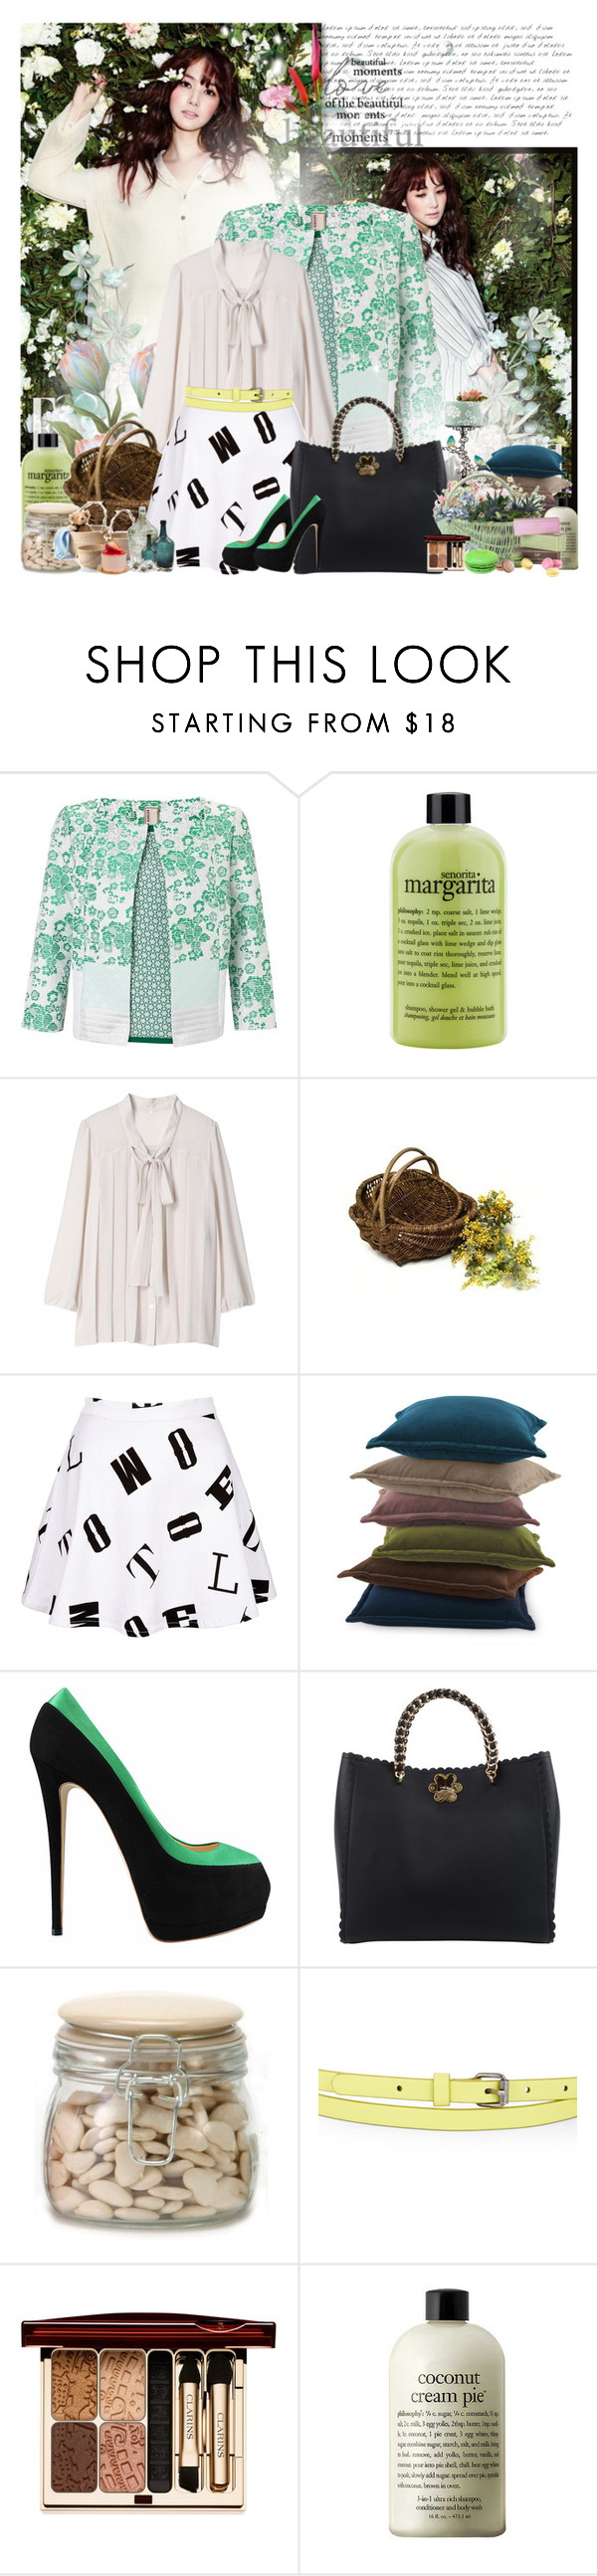 """""""Refresh"""" by rainie-minnie ❤ liked on Polyvore featuring Antonio Marras, philosophy, French Country, Motel, Giuseppe Zanotti, Mulberry, BCBGMAXAZRIA, Clarins and INC International Concepts"""